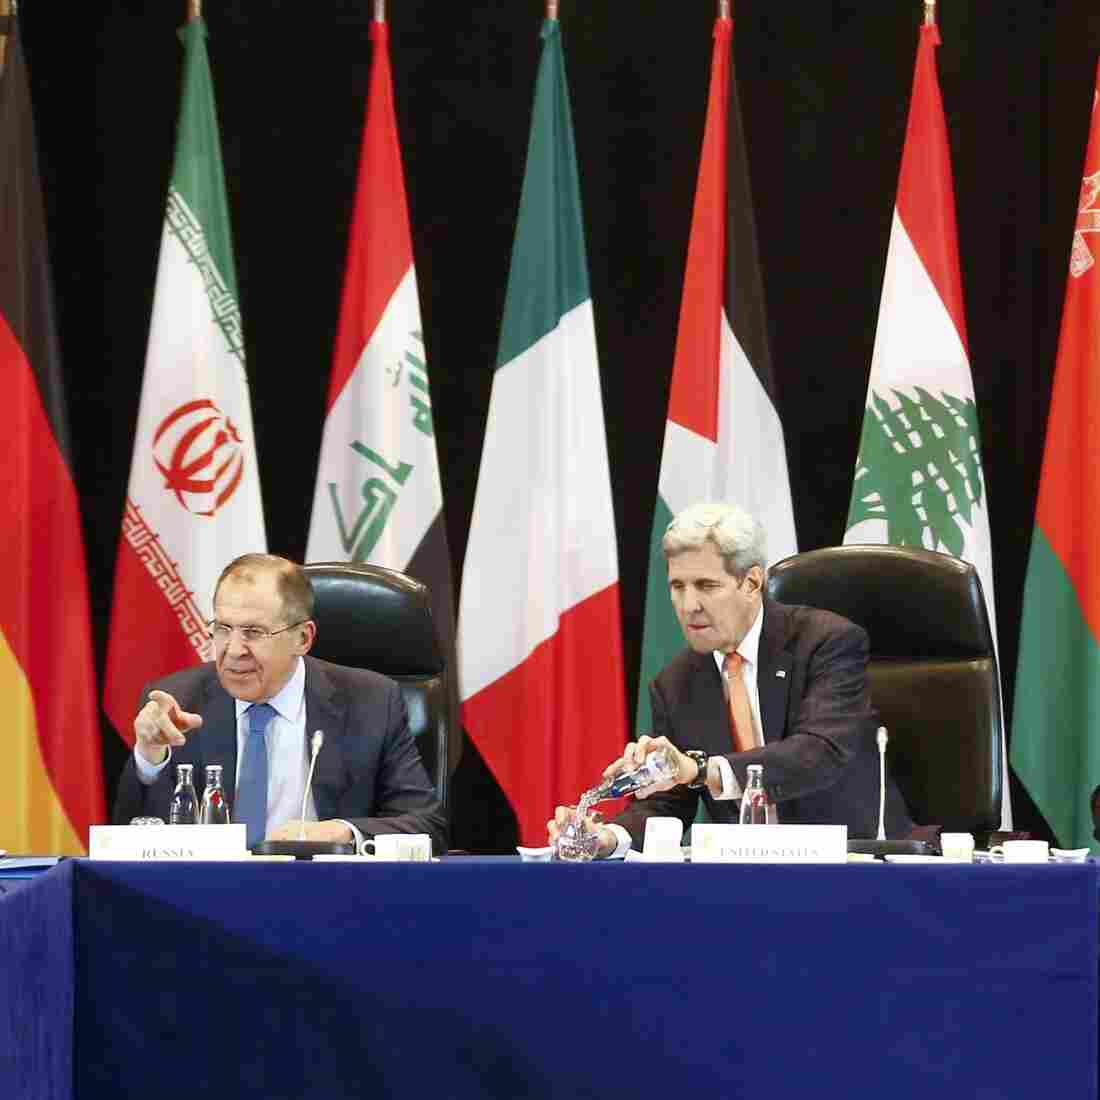 Progress In Munich Talks: What That Means For Syrian Peace Process